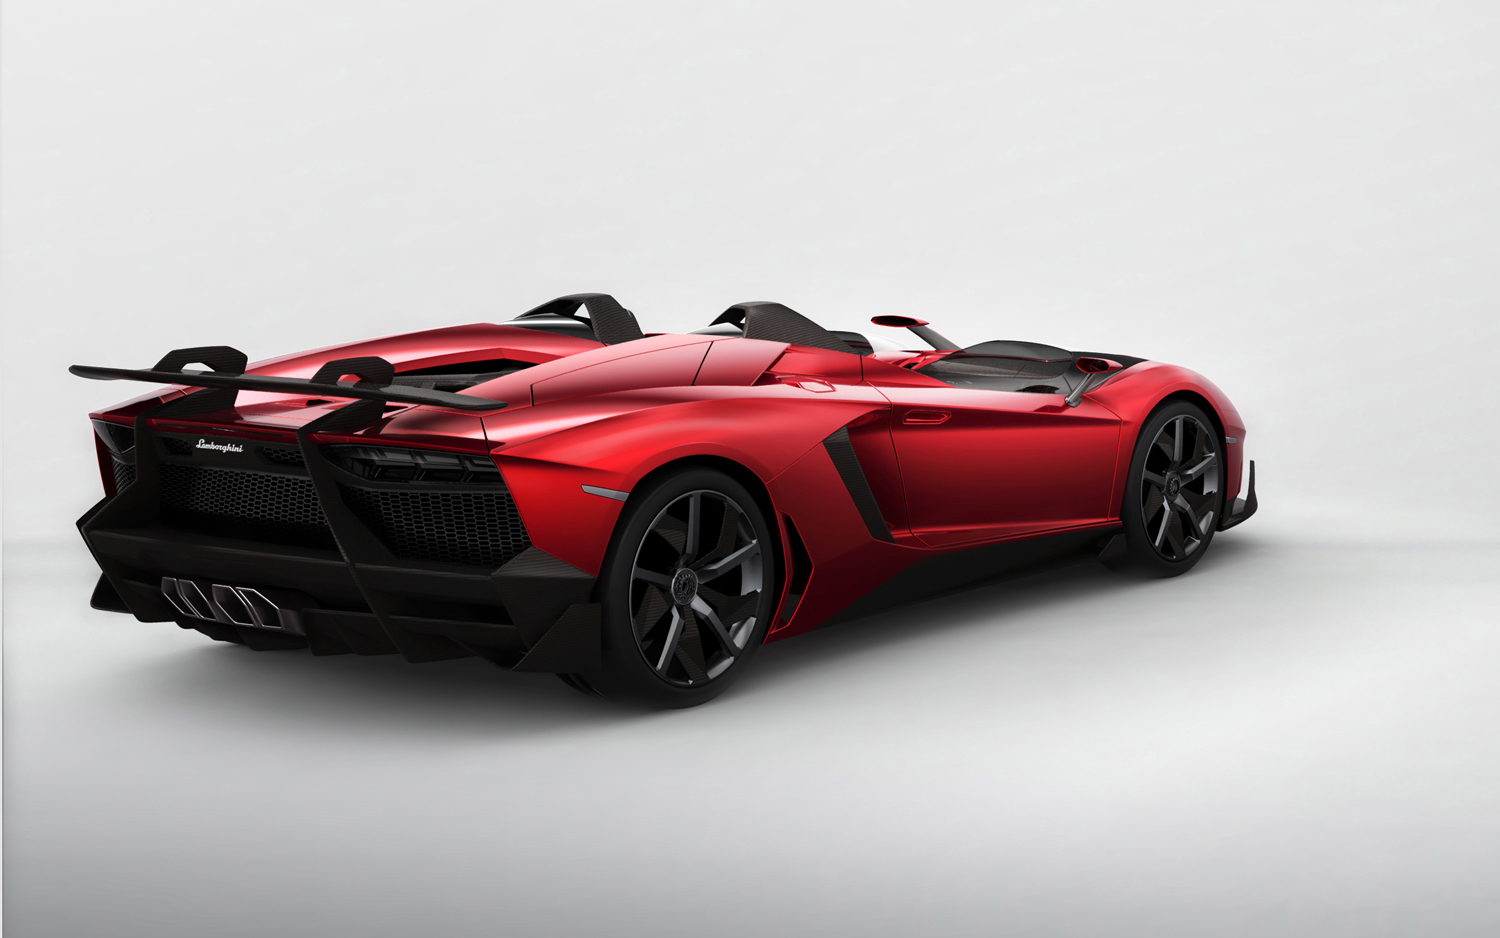 supercar dashboard html with Lamborghini Aventador J on Car Steering Wheel Ferrari additionally 2013 Bmw I8 Concept likewise 65361 Mid Engine Corvette Not Me 3 likewise Stock Photo Australian Fpv Ford Falcon Ute Or Utility Pick Up Pickup Truck Modern 41864137 further 2017 Bugatti Chiron Lets Its Quad Turbocharged W16 Loose 105105.